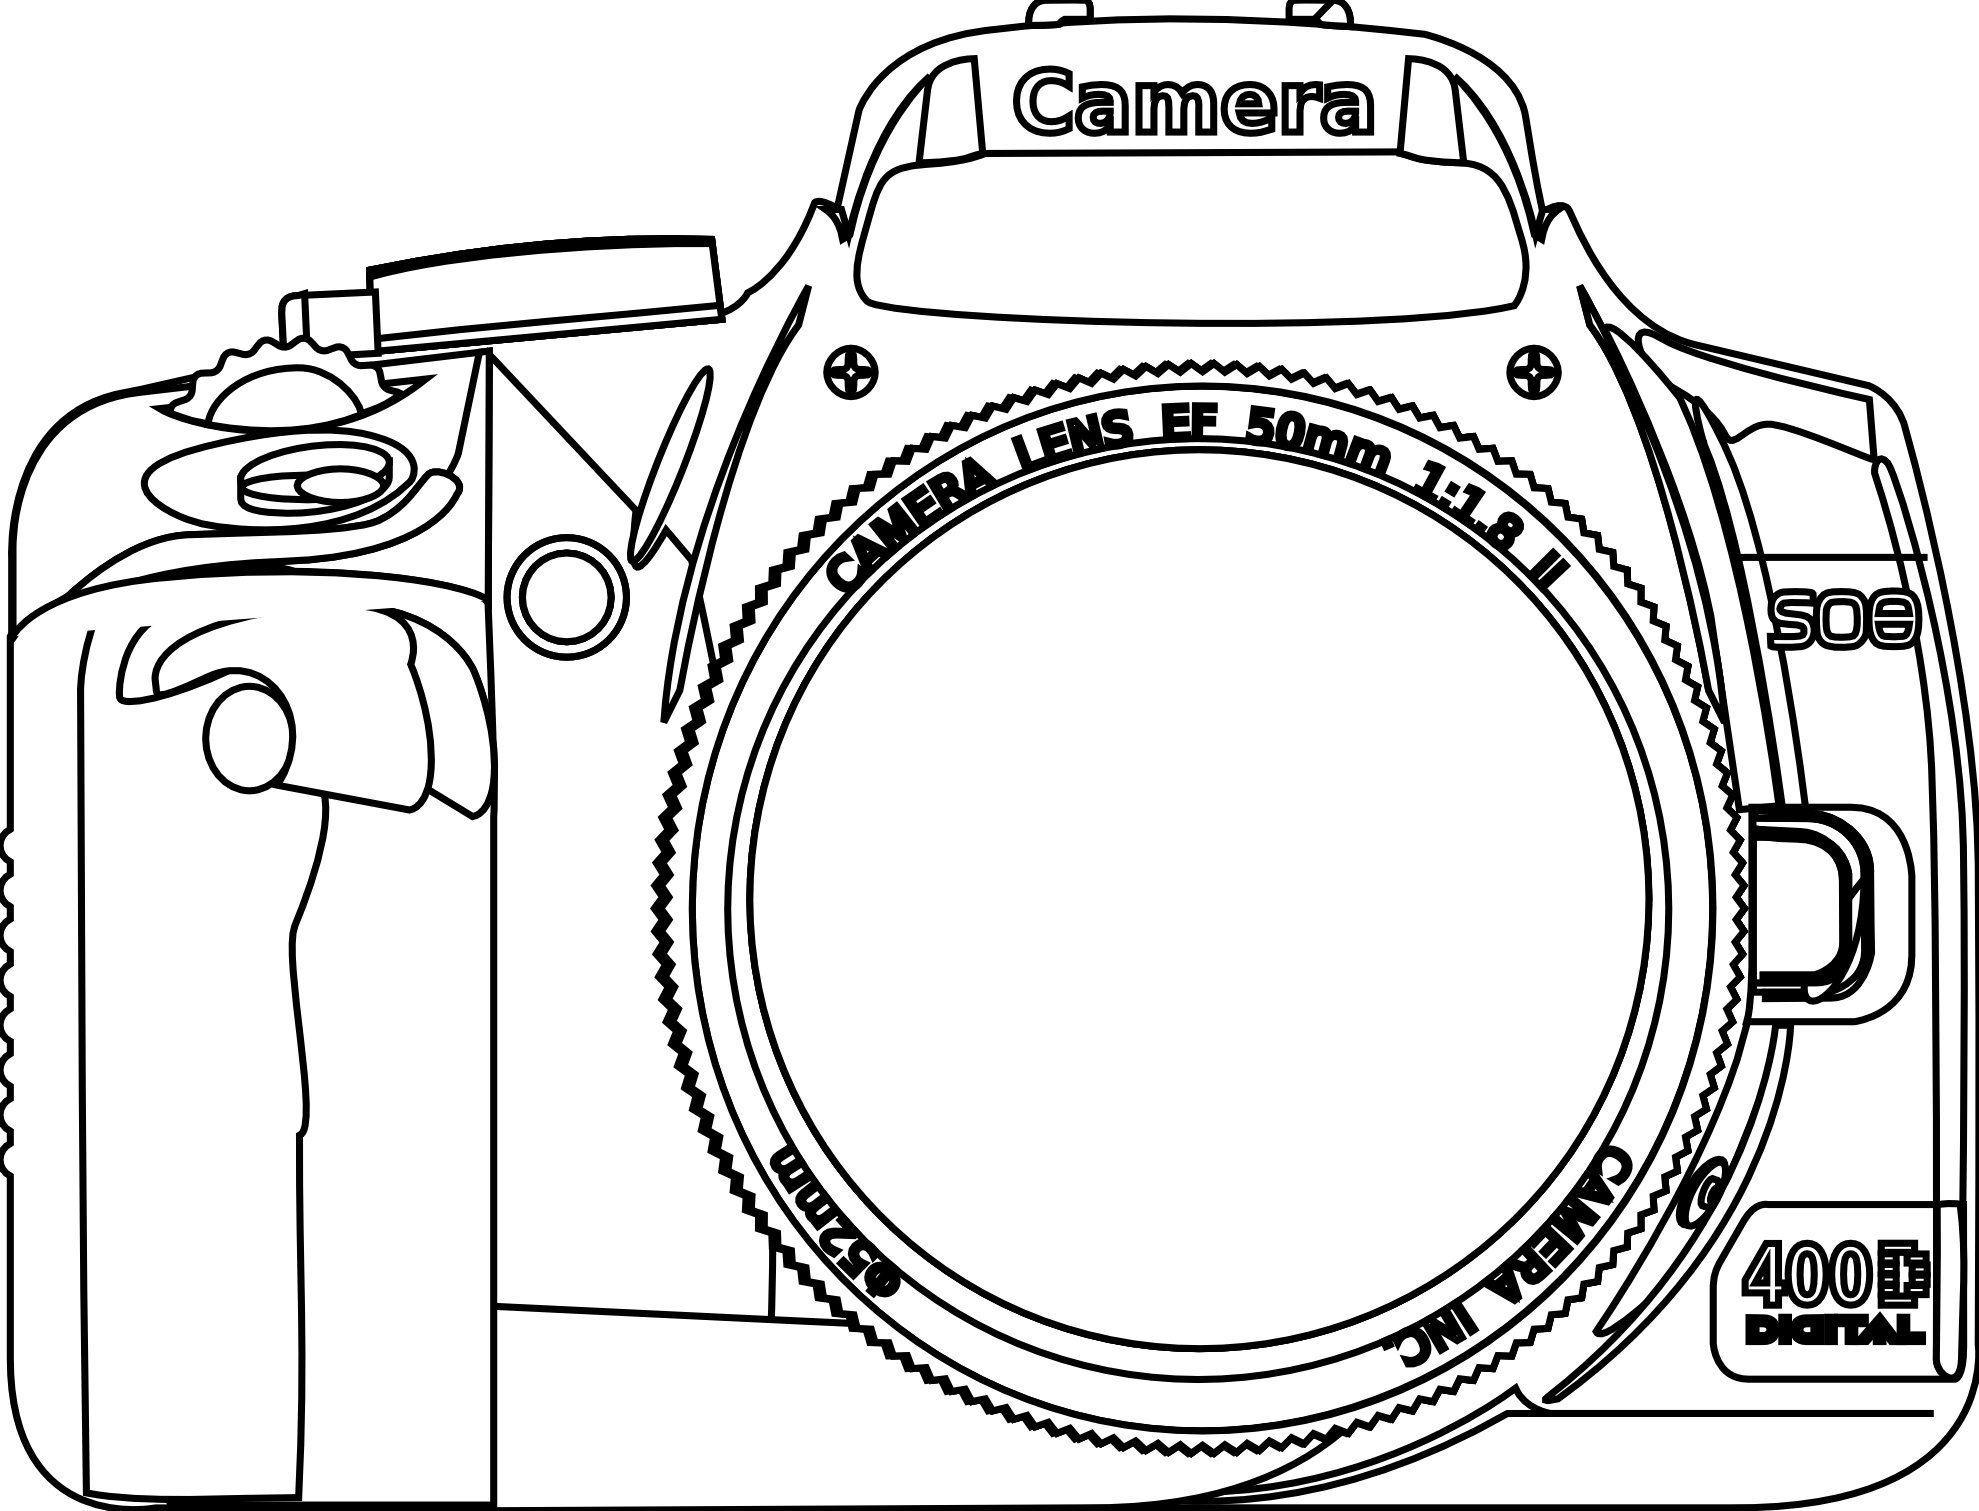 1979x1511 Image Result For Camera Dslr Vector Art Project